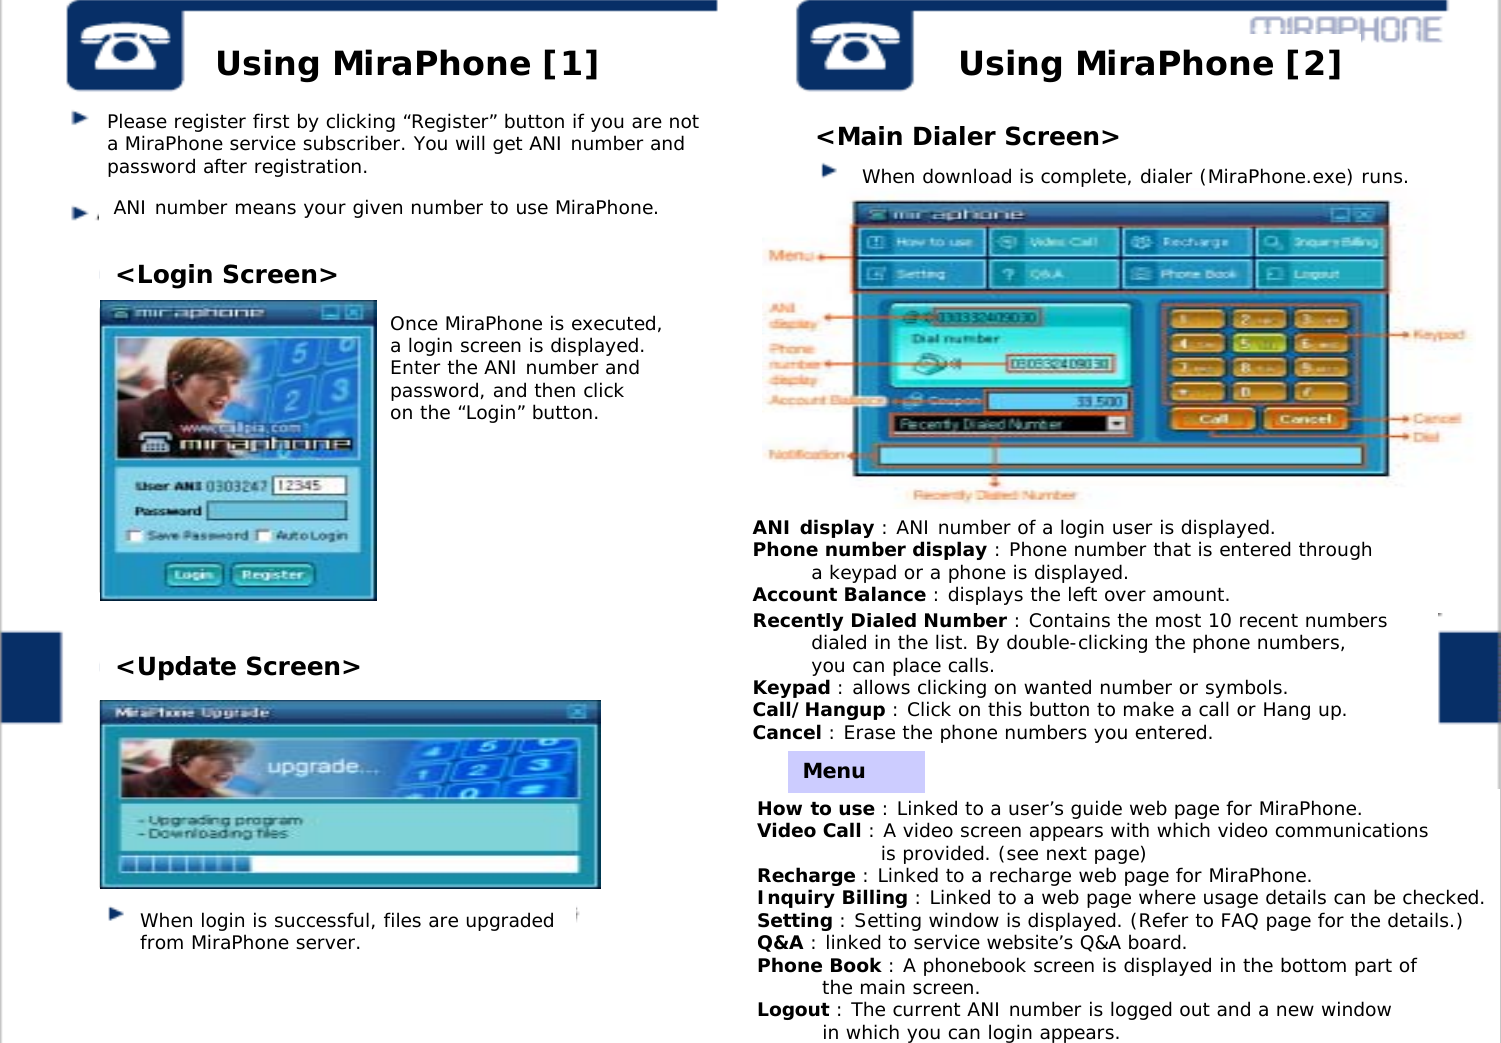 """Using MiraPhone [1] Using MiraPhone [2]Please register first by clicking """"Register"""" button if you are not a MiraPhone service subscriber. You will get ANI number and password after registration.ANI number means your given number to use MiraPhone.Once MiraPhone is executed, a login screen is displayed. Enter the ANI number andpassword, and then click on the """"Login"""" button.When login is successful, files are upgraded from MiraPhone server.When download is complete, dialer (MiraPhone.exe) runs.Recently Dialed Number : Contains the most 10 recent numbers dialed in the list. By double-clicking the phone numbers, you can place calls. Keypad : allows clicking on wanted number or symbols.Call/Hangup : Click on this button to make a call or Hang up.Cancel : Erase the phone numbers you entered.How to use : Linked to a user's guide web page for MiraPhone. Video Call : A video screen appears with which video communications is provided. (see next page)Recharge : Linked to a recharge web page for MiraPhone.Inquiry Billing : Linked to a web page where usage details can be checked.Setting : Setting window is displayed. (Refer to FAQ page for the details.)Q&A : linked to service website's Q&A board.Phone Book : A phonebook screen is displayed in the bottom part of the main screen. Logout : The current ANI number is logged out and a new window in which you can login appears.<Login Screen><Update Screen><Main Dialer Screen>ANI display : ANI number of a login user is displayed.Phone number display : Phone number that is entered through a keypad or a phone is displayed.Account Balance : displays the left over amount.<Menu>Menu"""